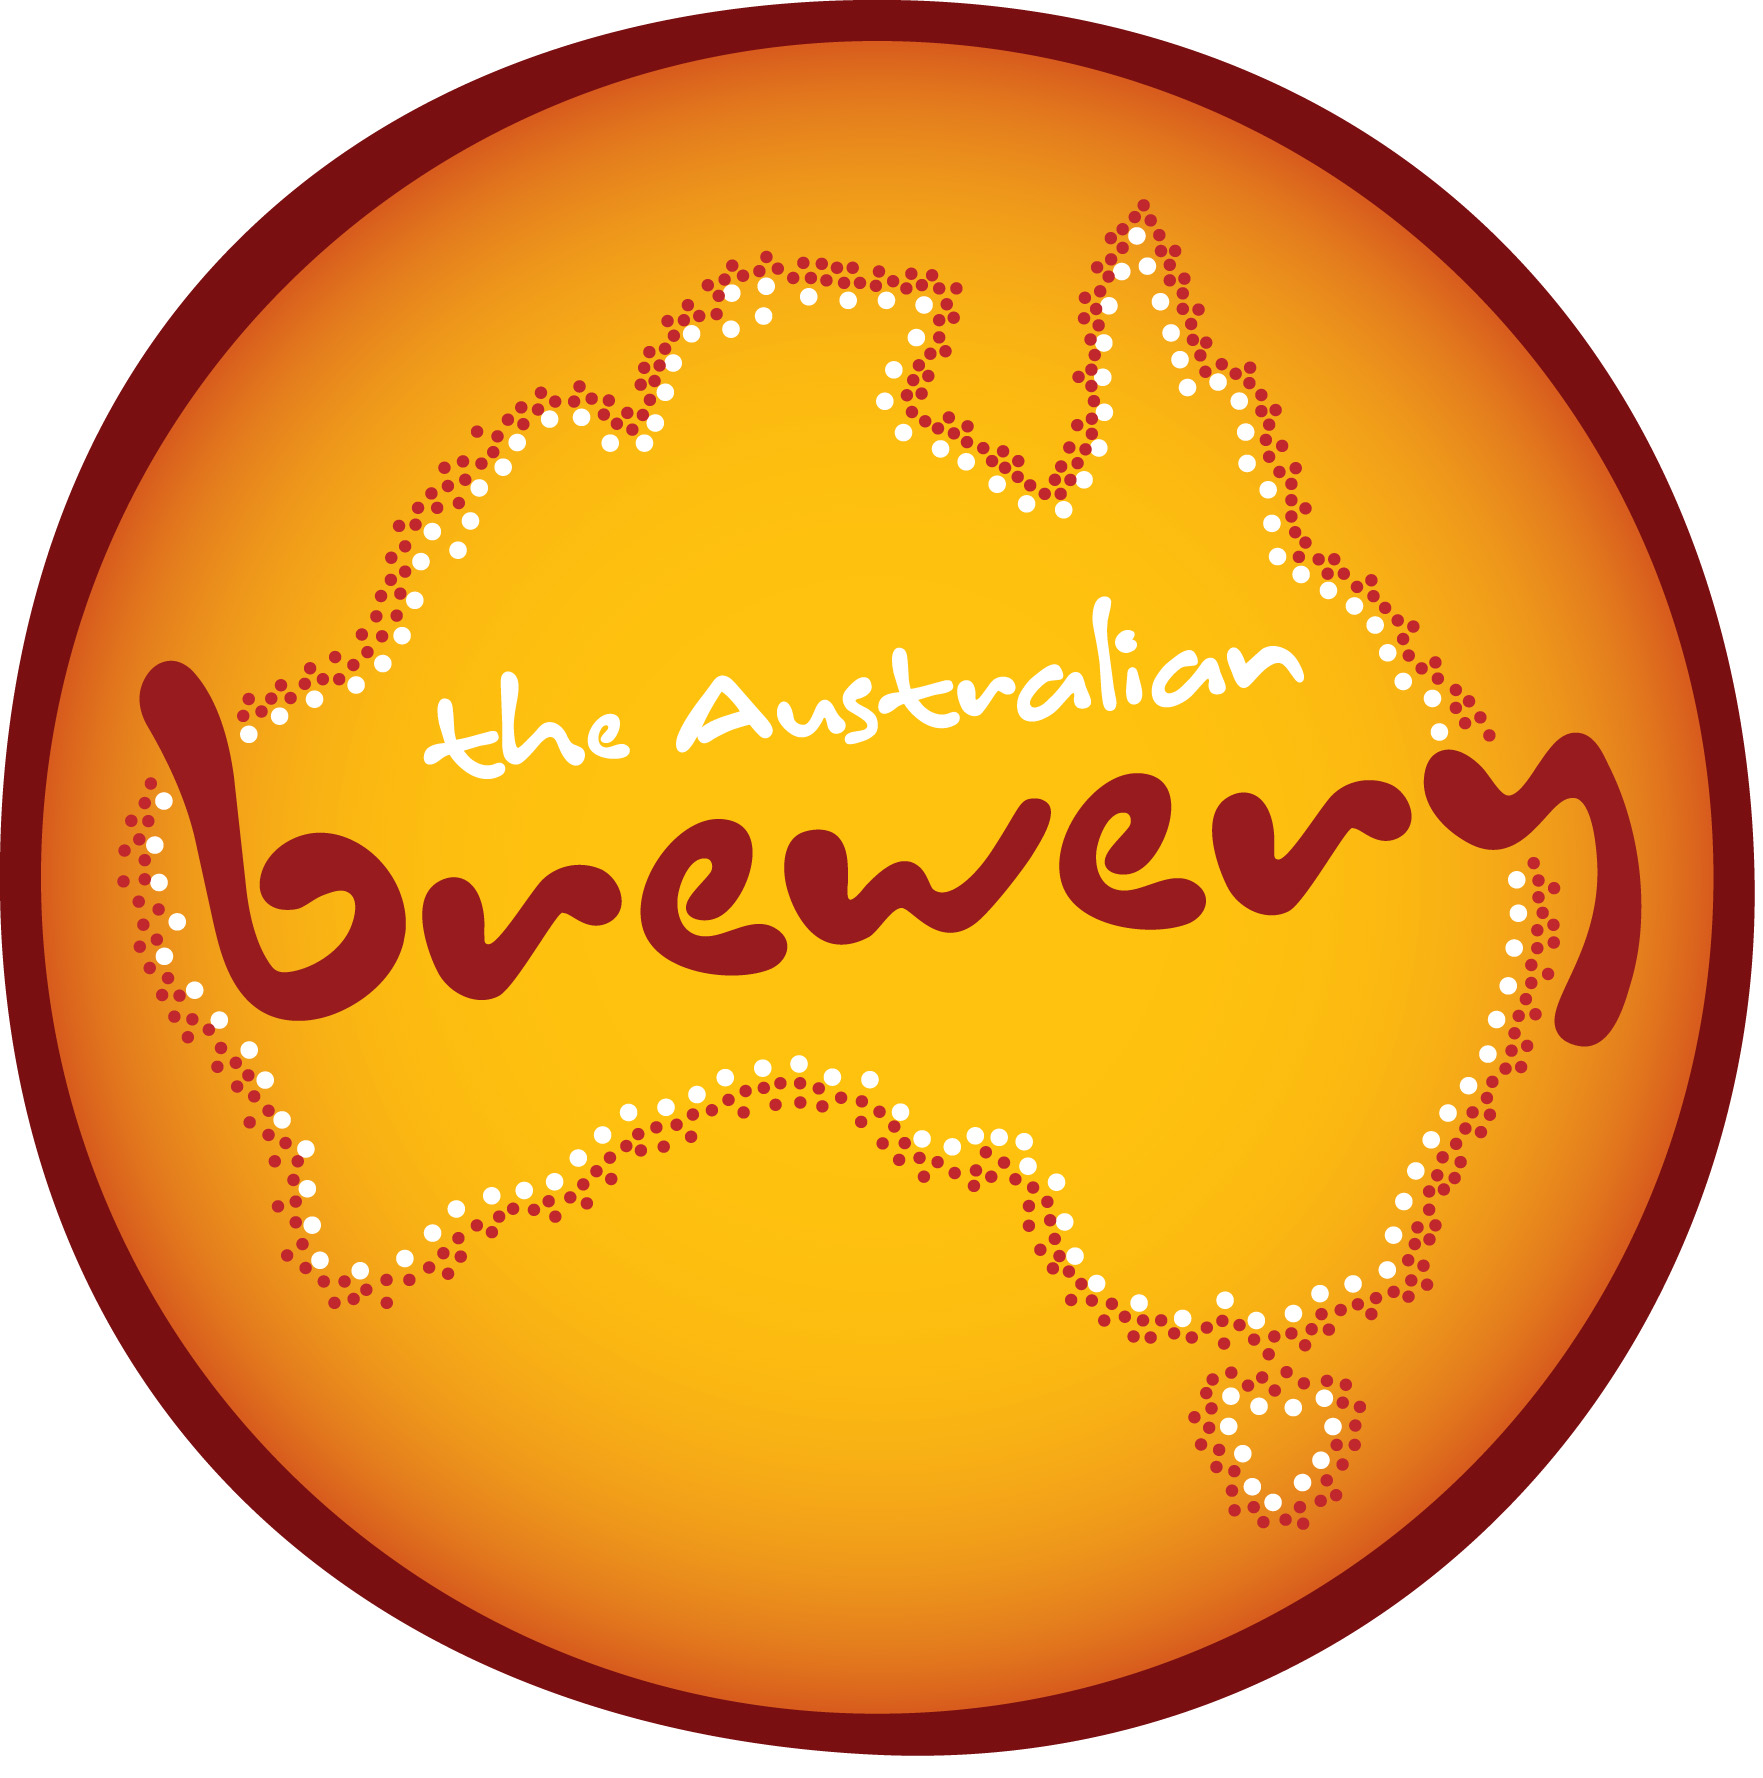 The Australian Brewery Logo and Images